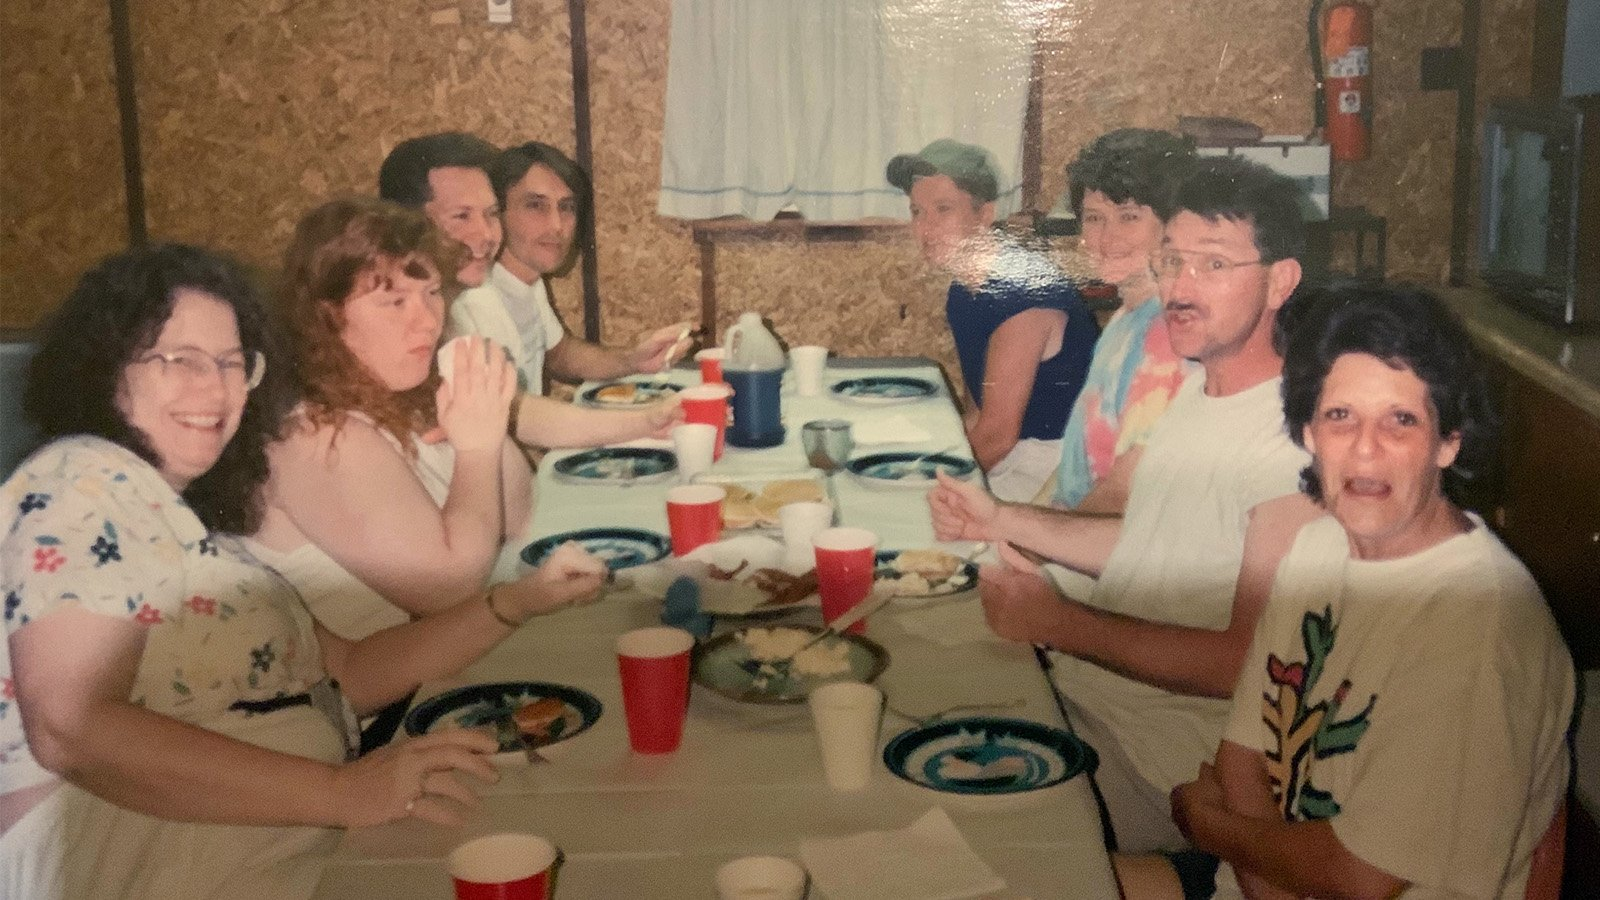 Several members of Community of Hope church during a mission trip in Oklahoma in the early 1990s. Photo courtesy of Brad Mulholland